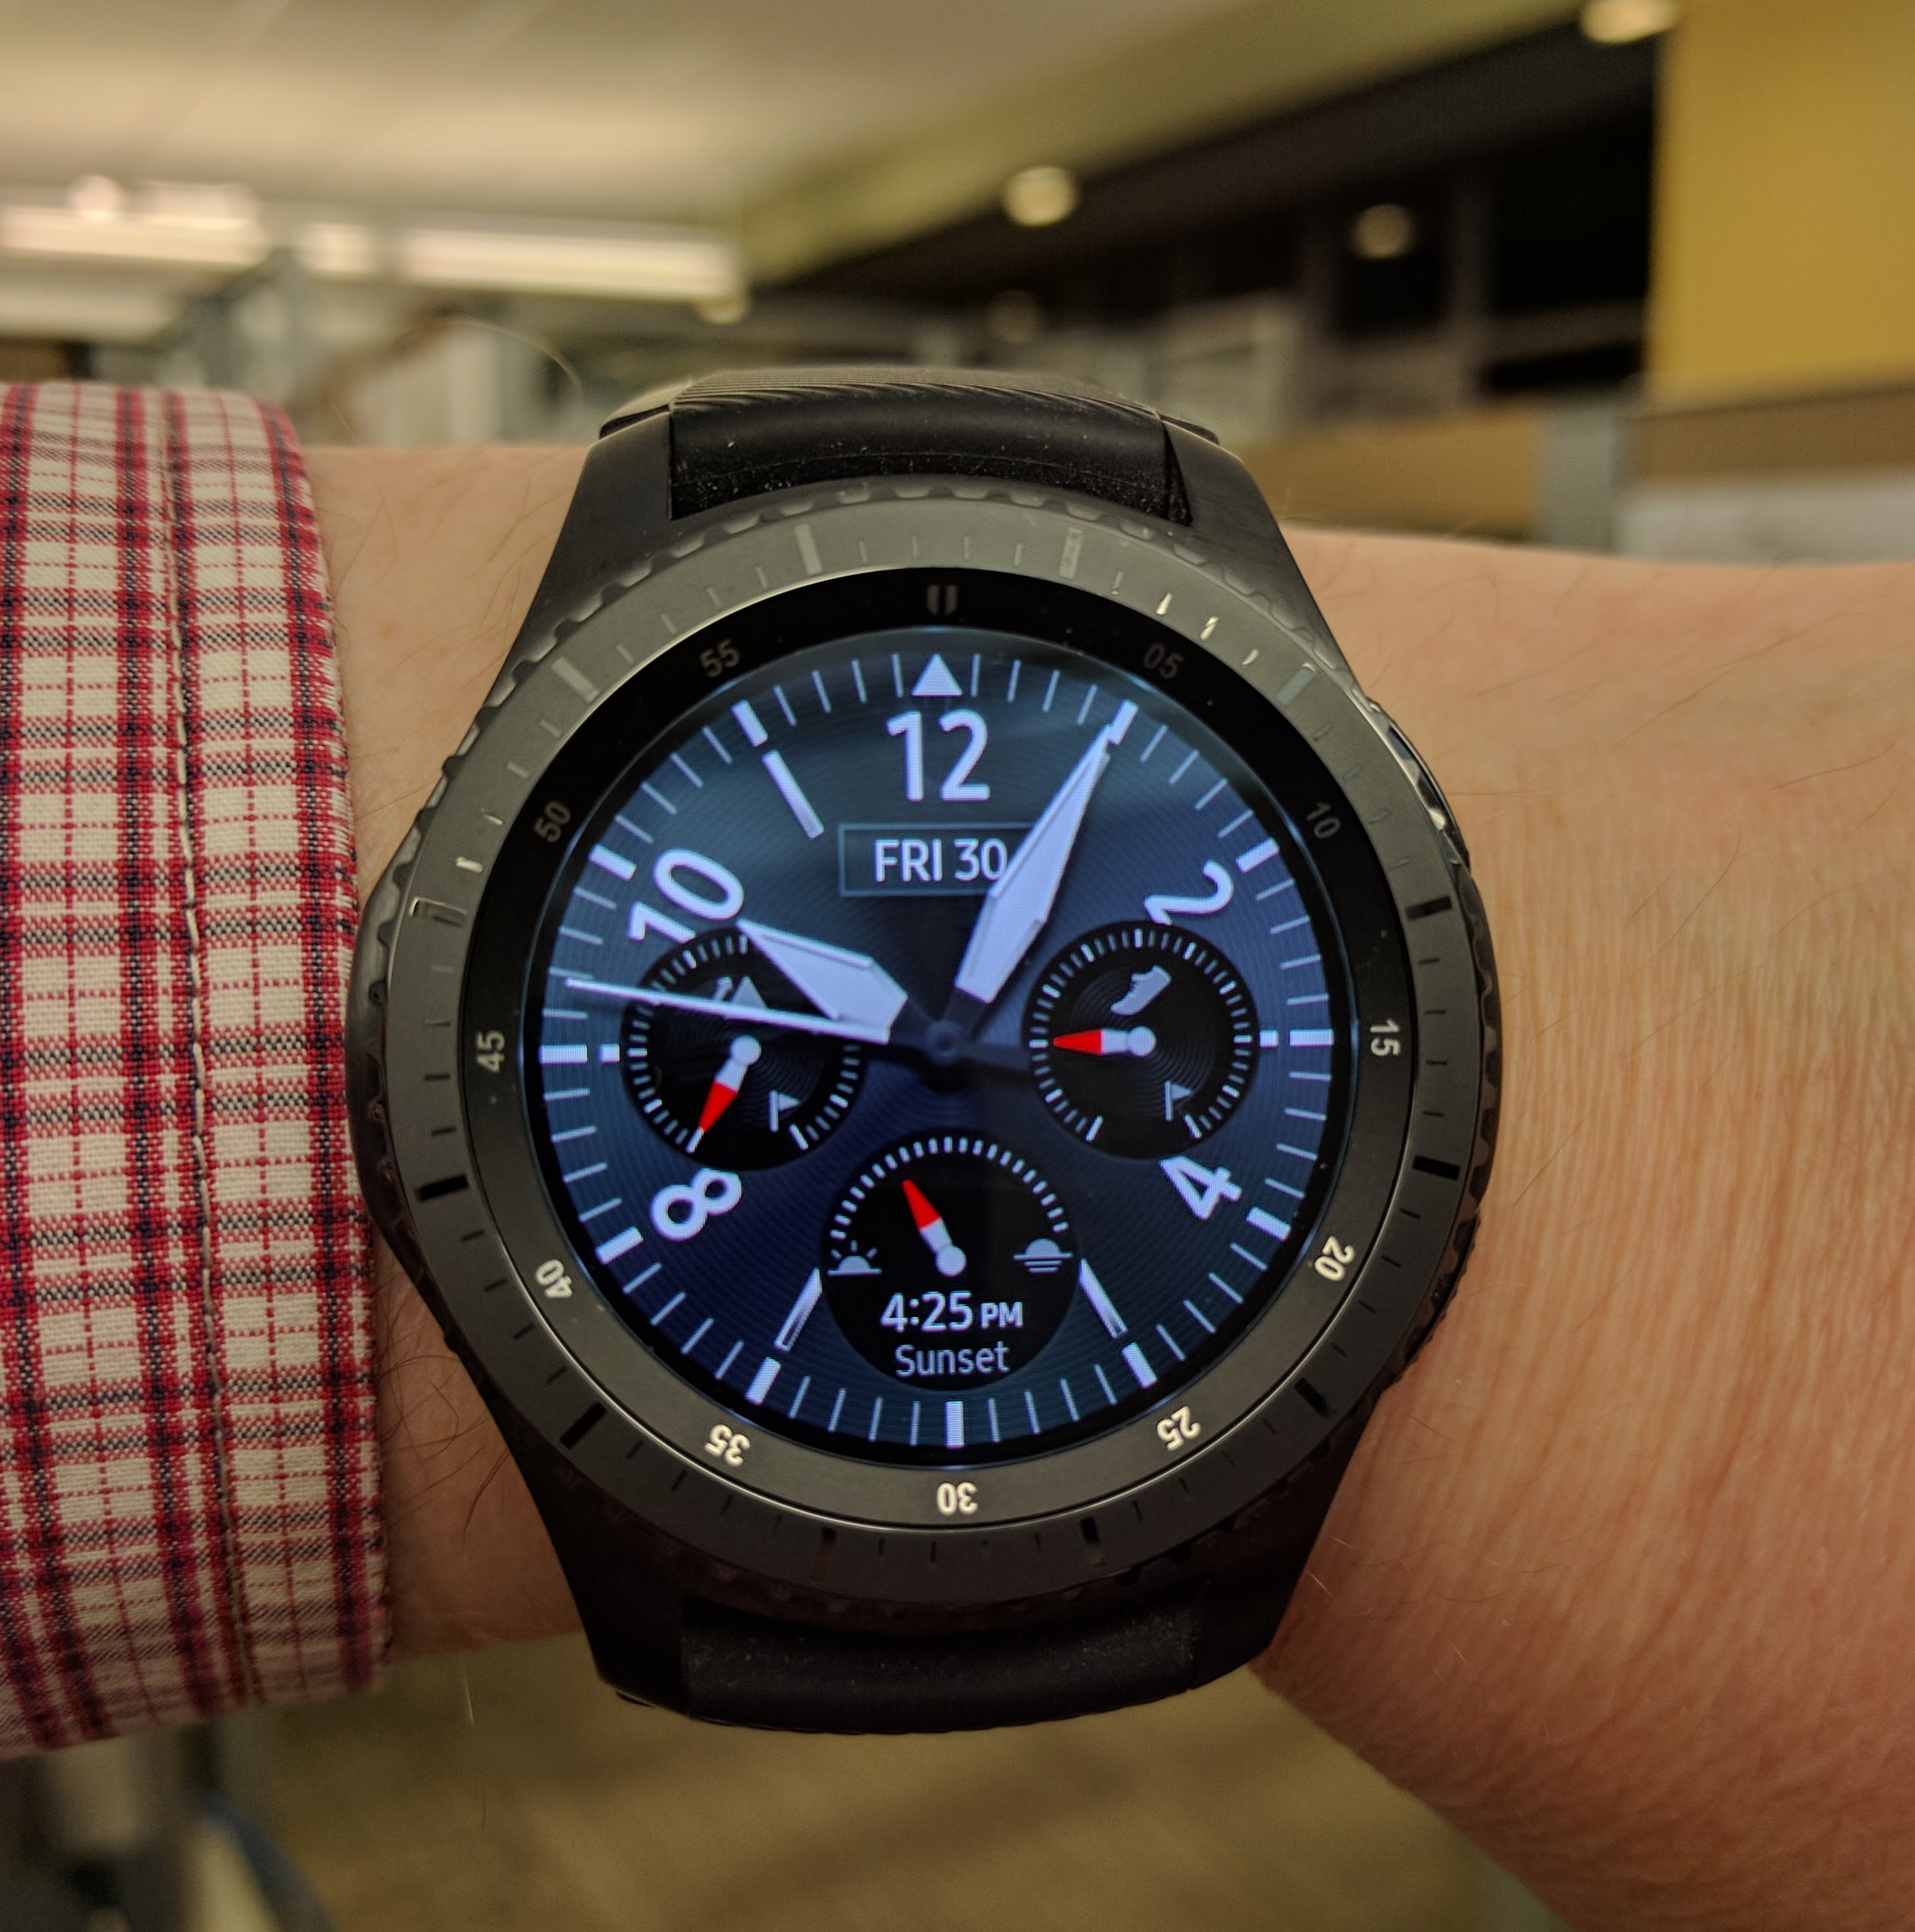 My Samsung Gear S3